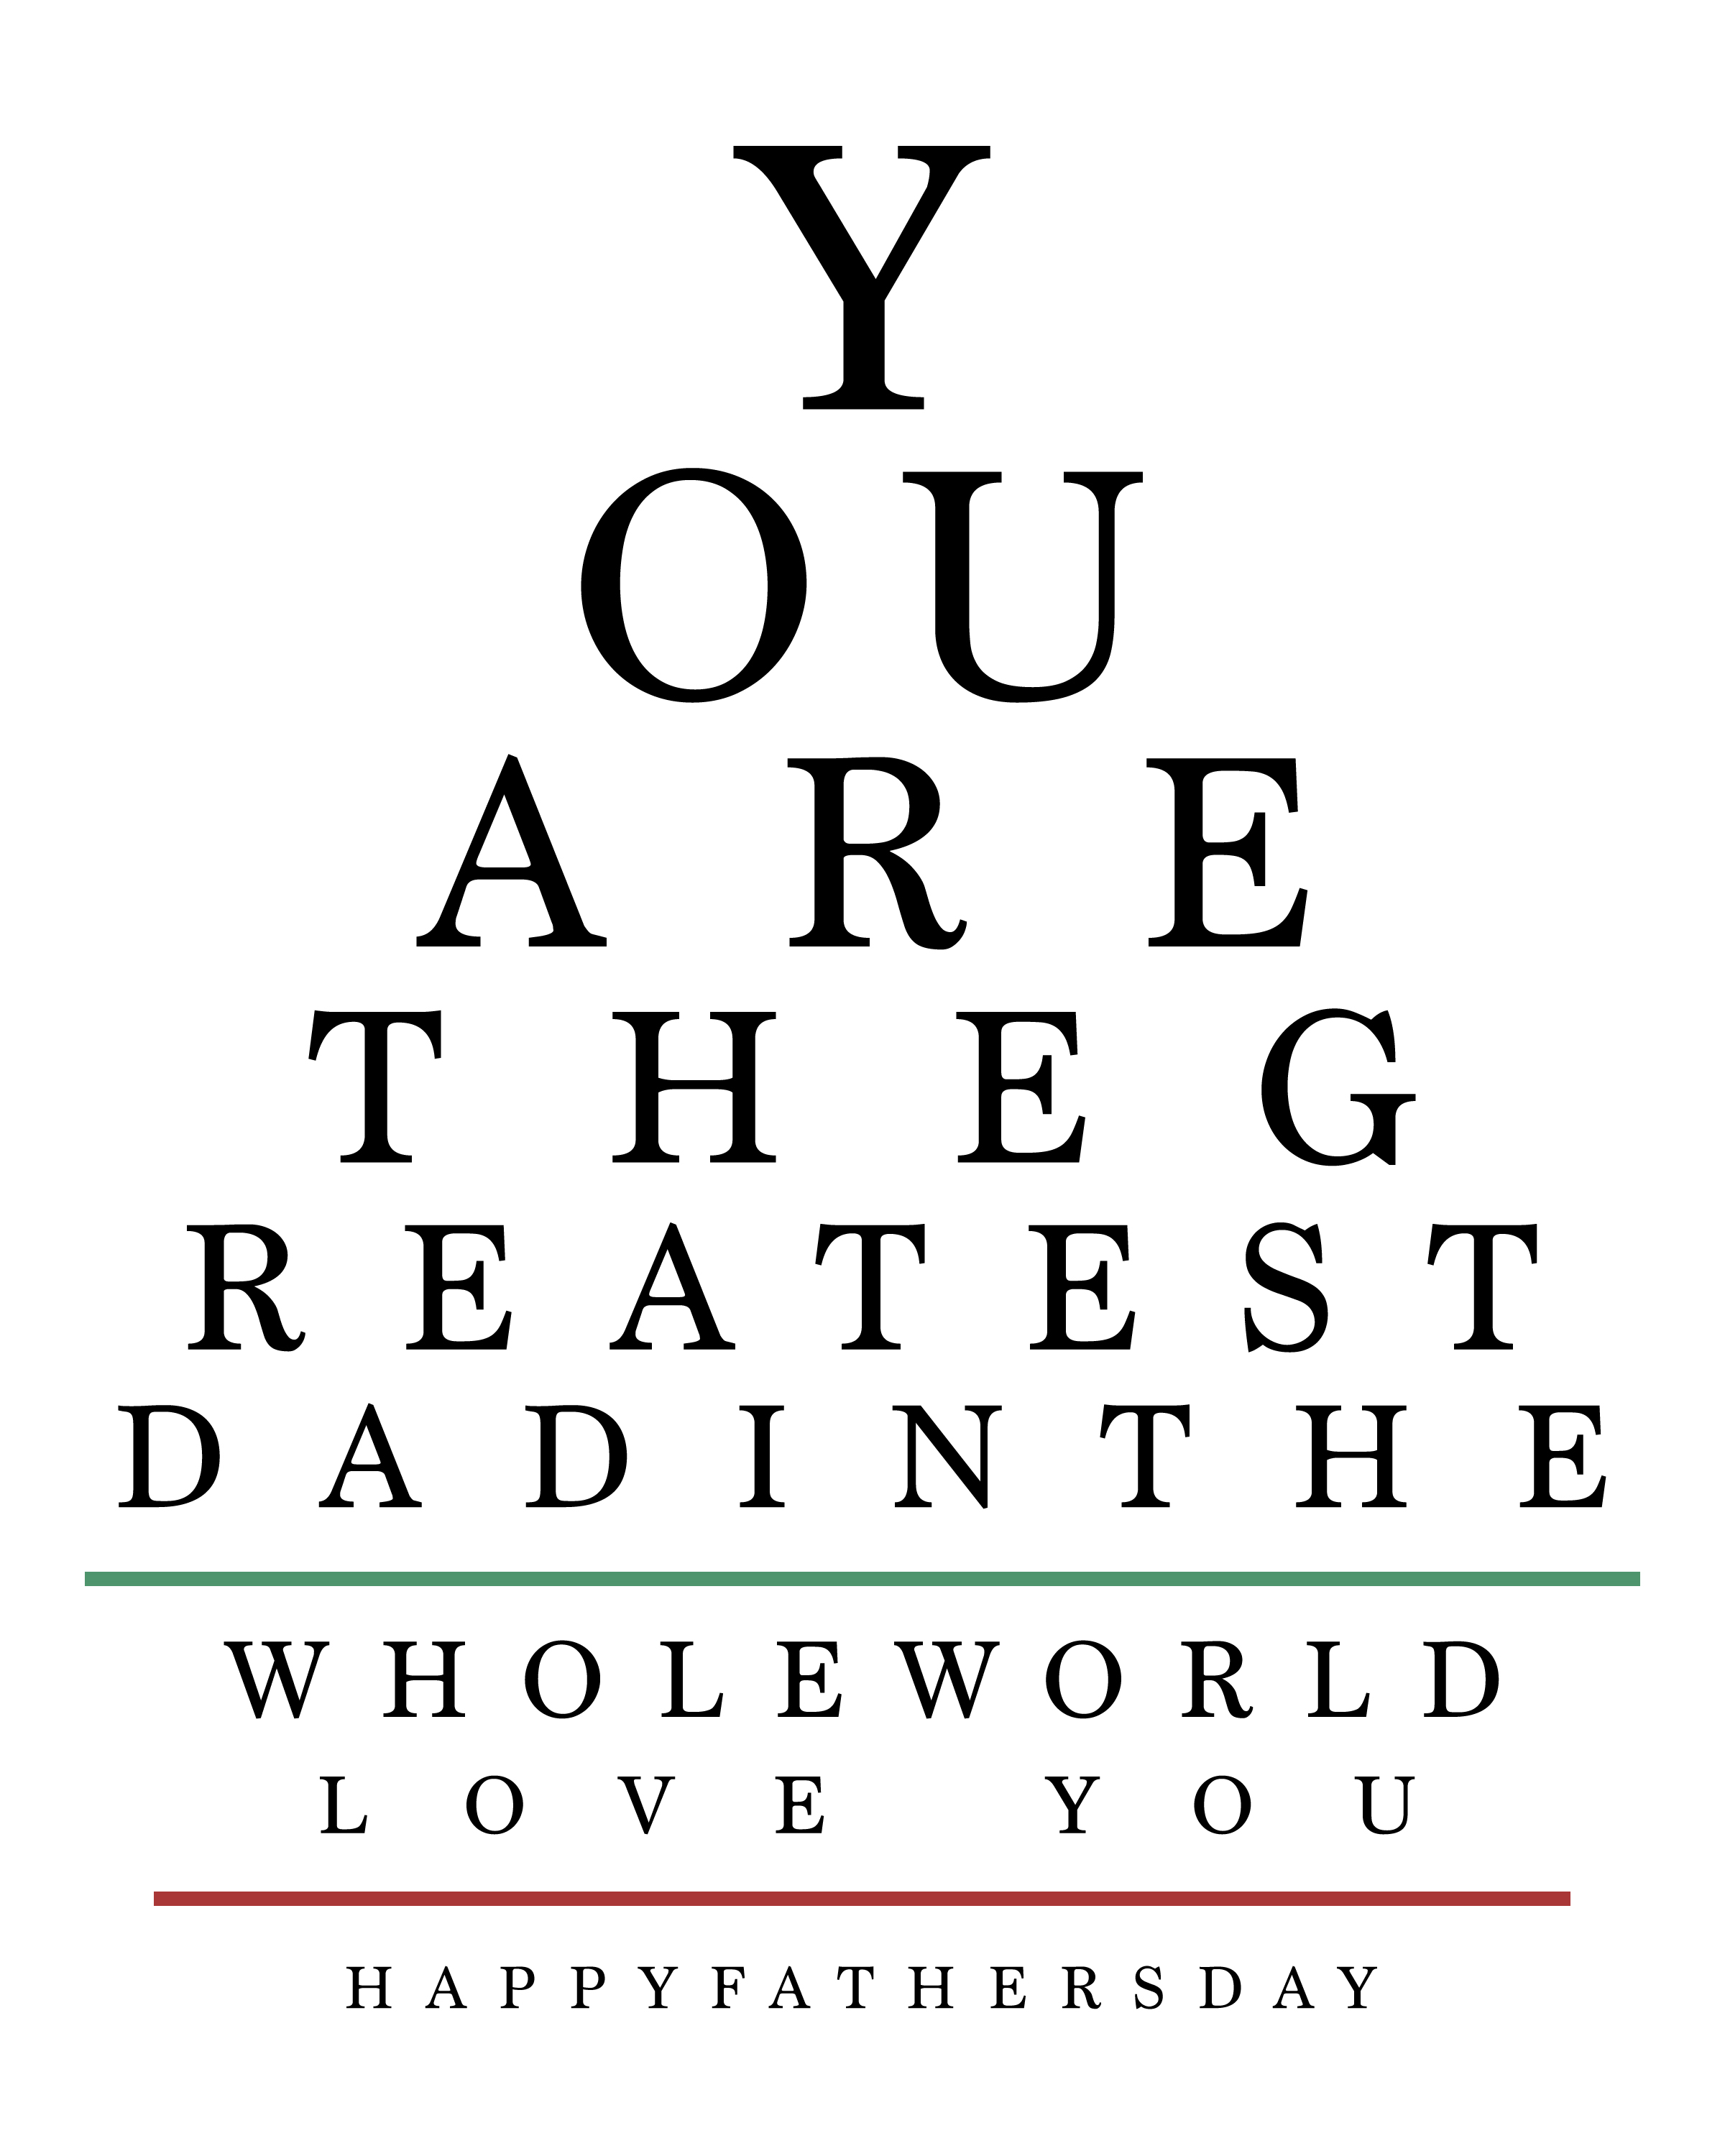 photograph regarding Free Printable Eyes named Totally free Printable Fathers Working day Eye Chart Assortment - The